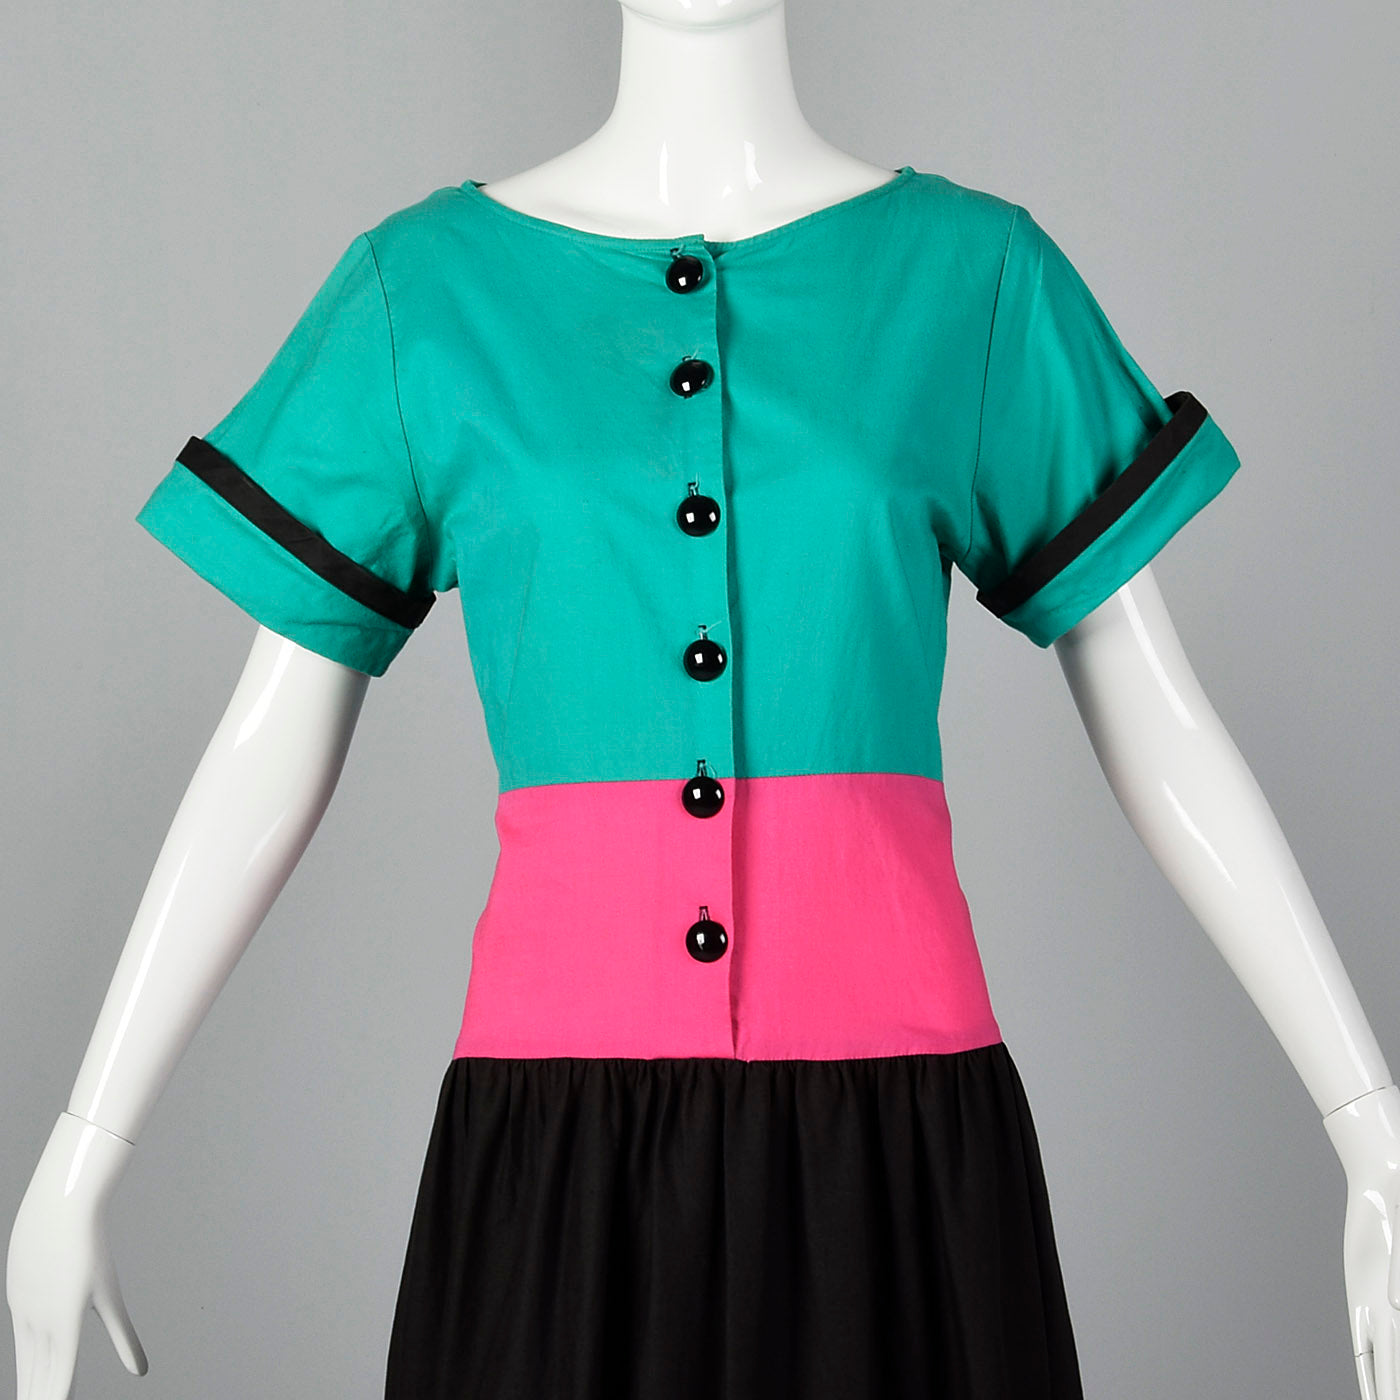 1990s Oscar de la Renta Neiman Marcus Color Block Cotton Dress